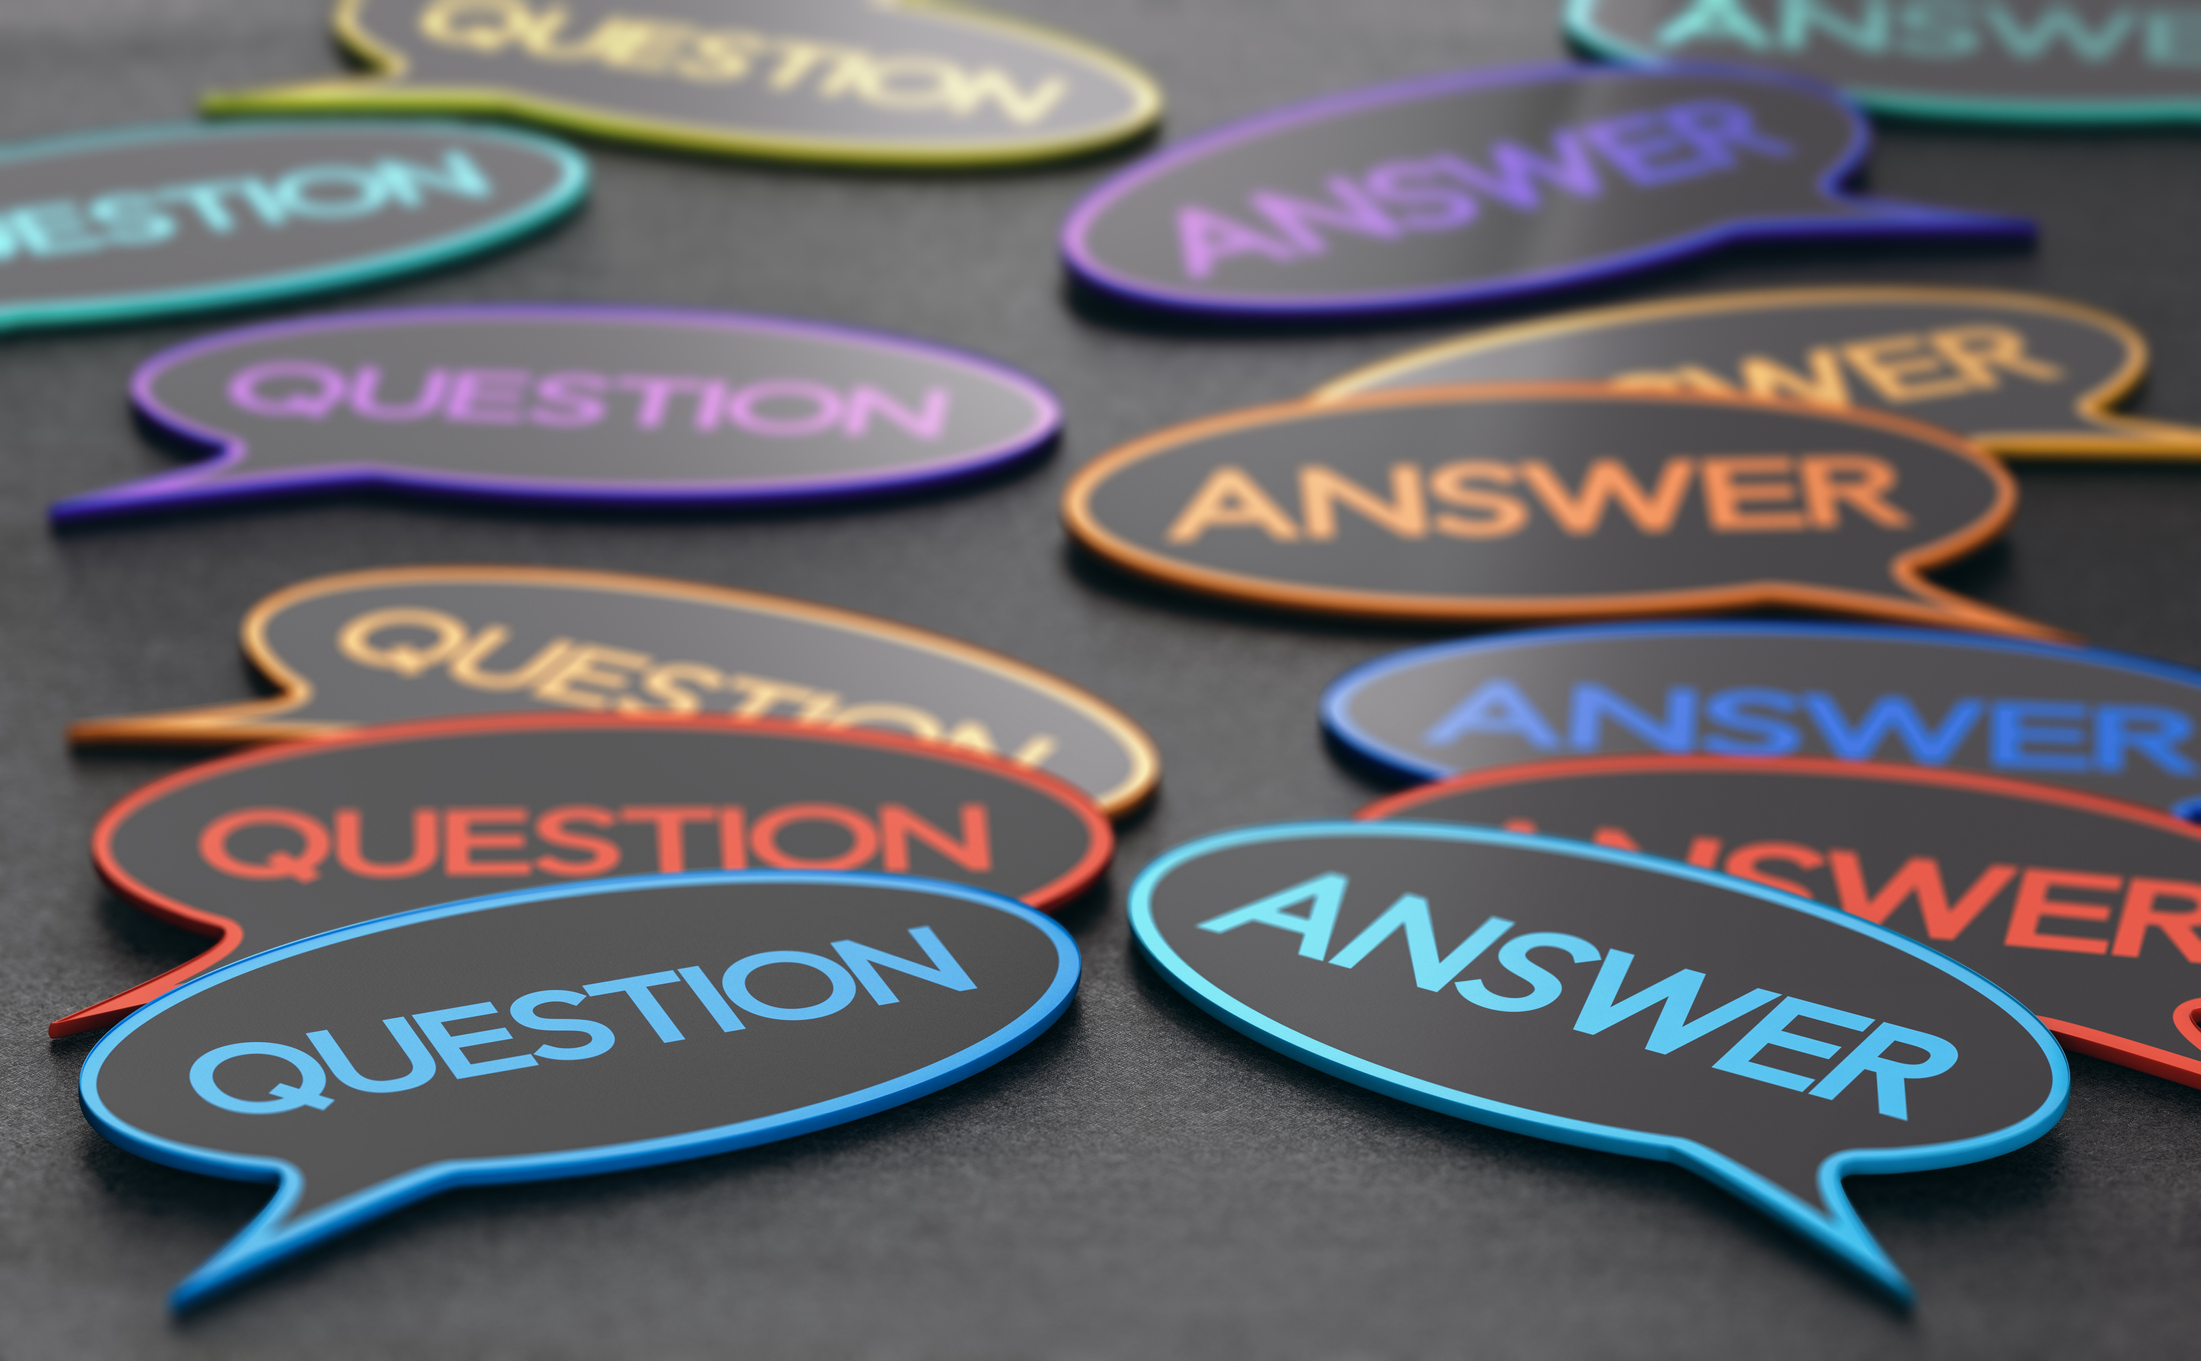 thought bubbles with the words 'question' and 'answer' representing a FAQ page on a financial advisor website www.paladindigitalmarketing.com